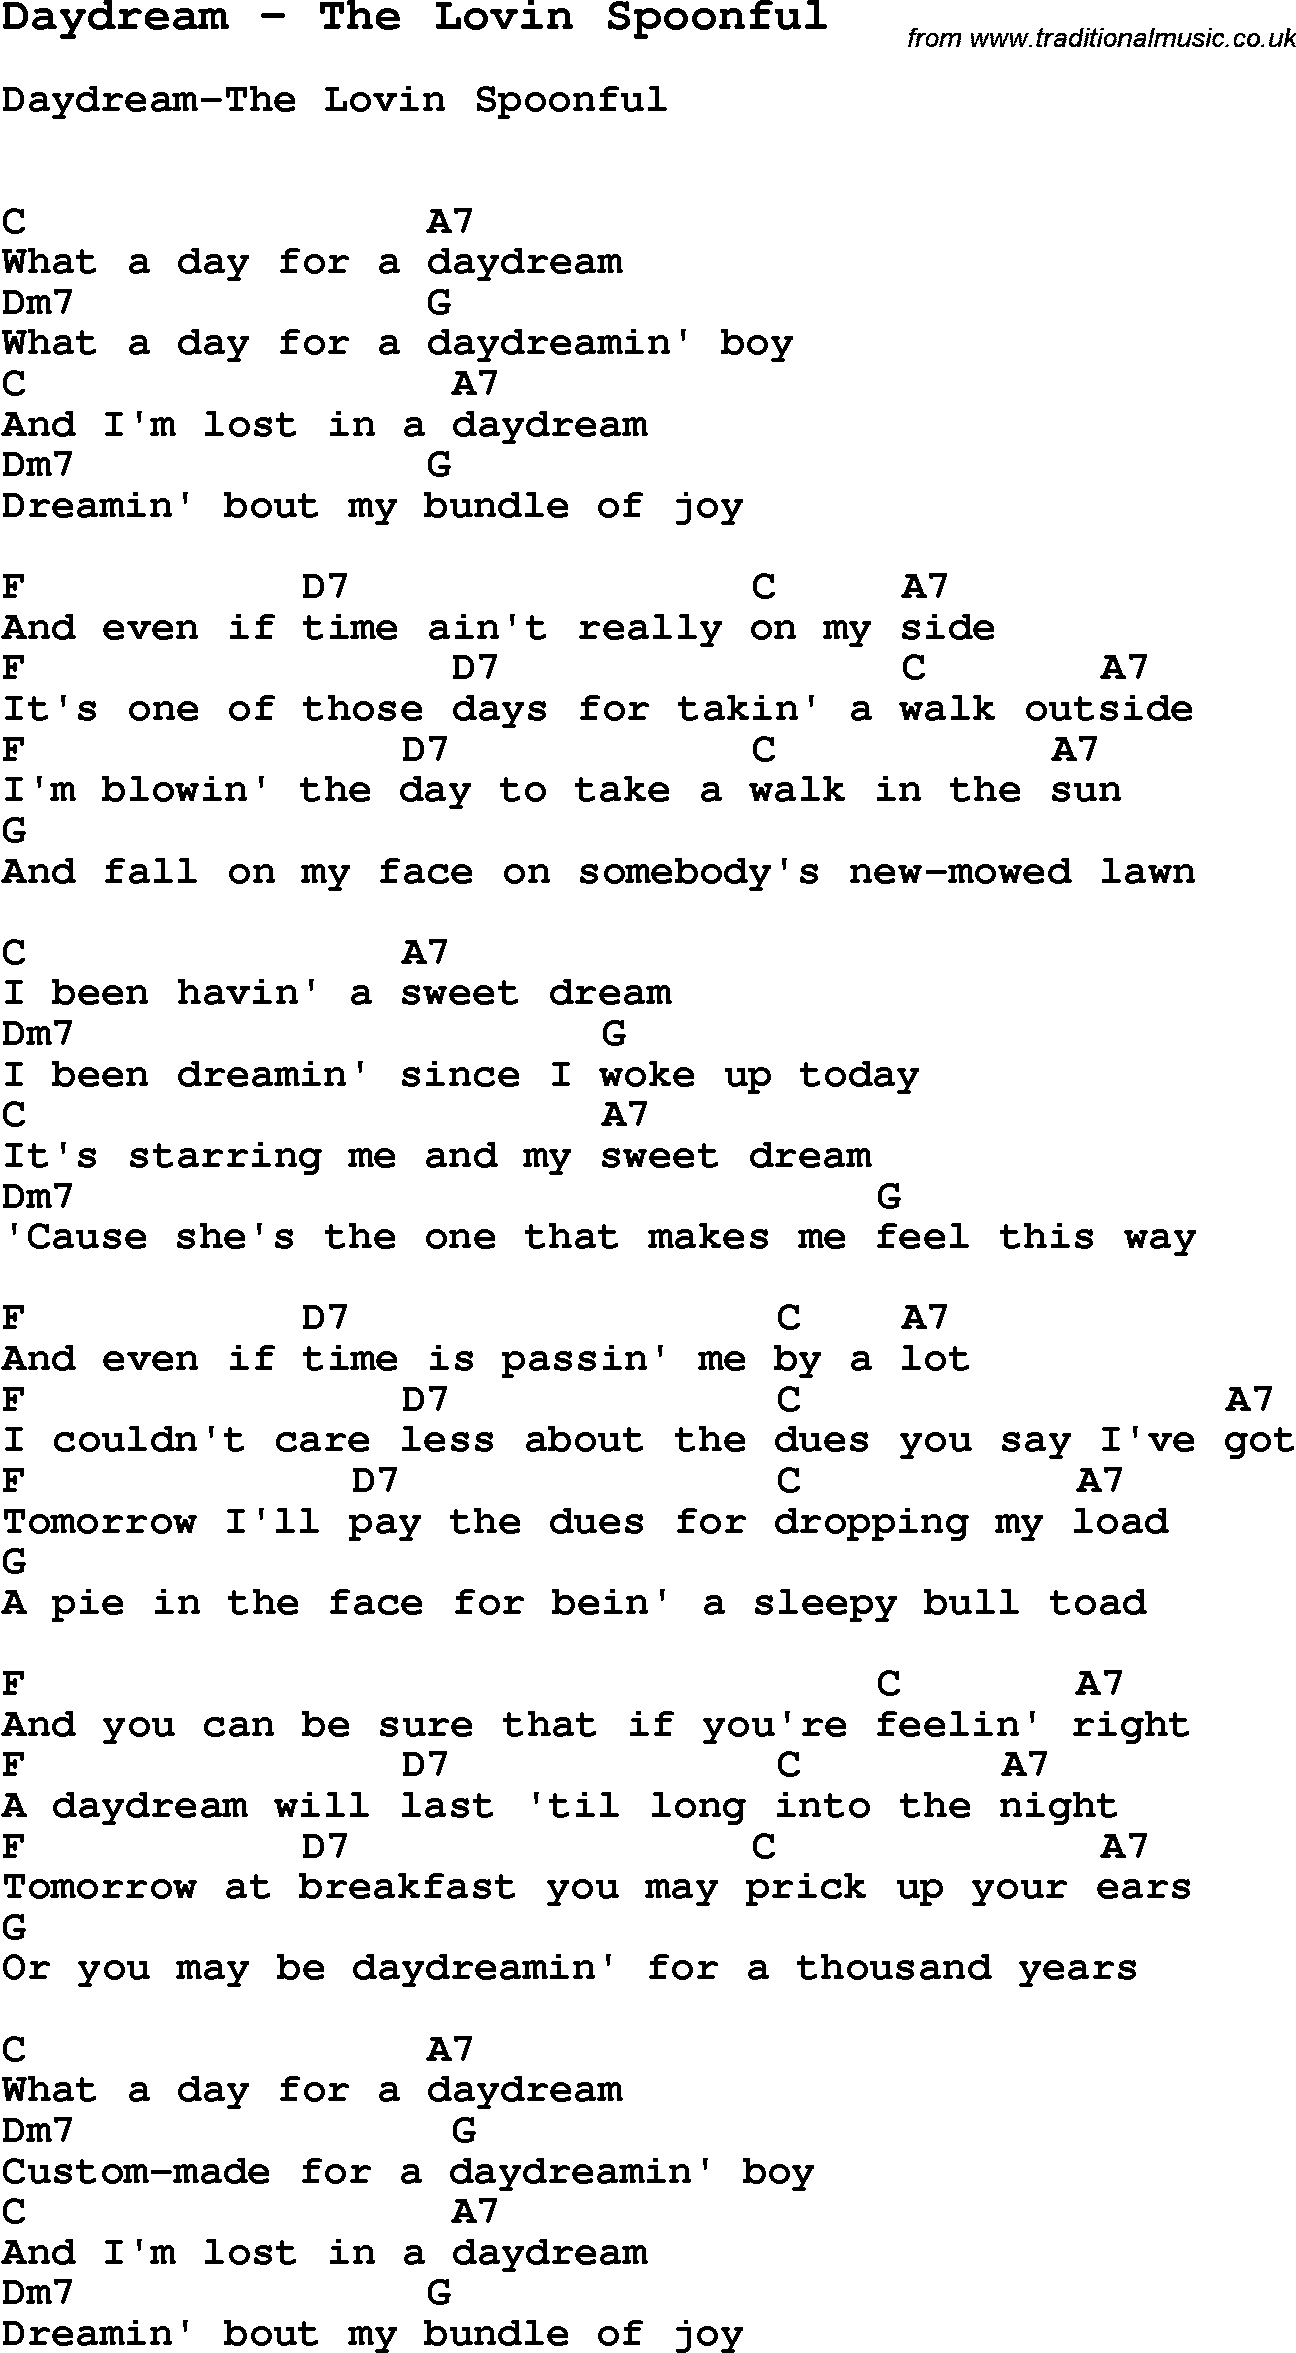 Song daydream by the lovin spoonful with lyrics for vocal song daydream by the lovin spoonful with lyrics for vocal performance and accompaniment chords for hexwebz Gallery